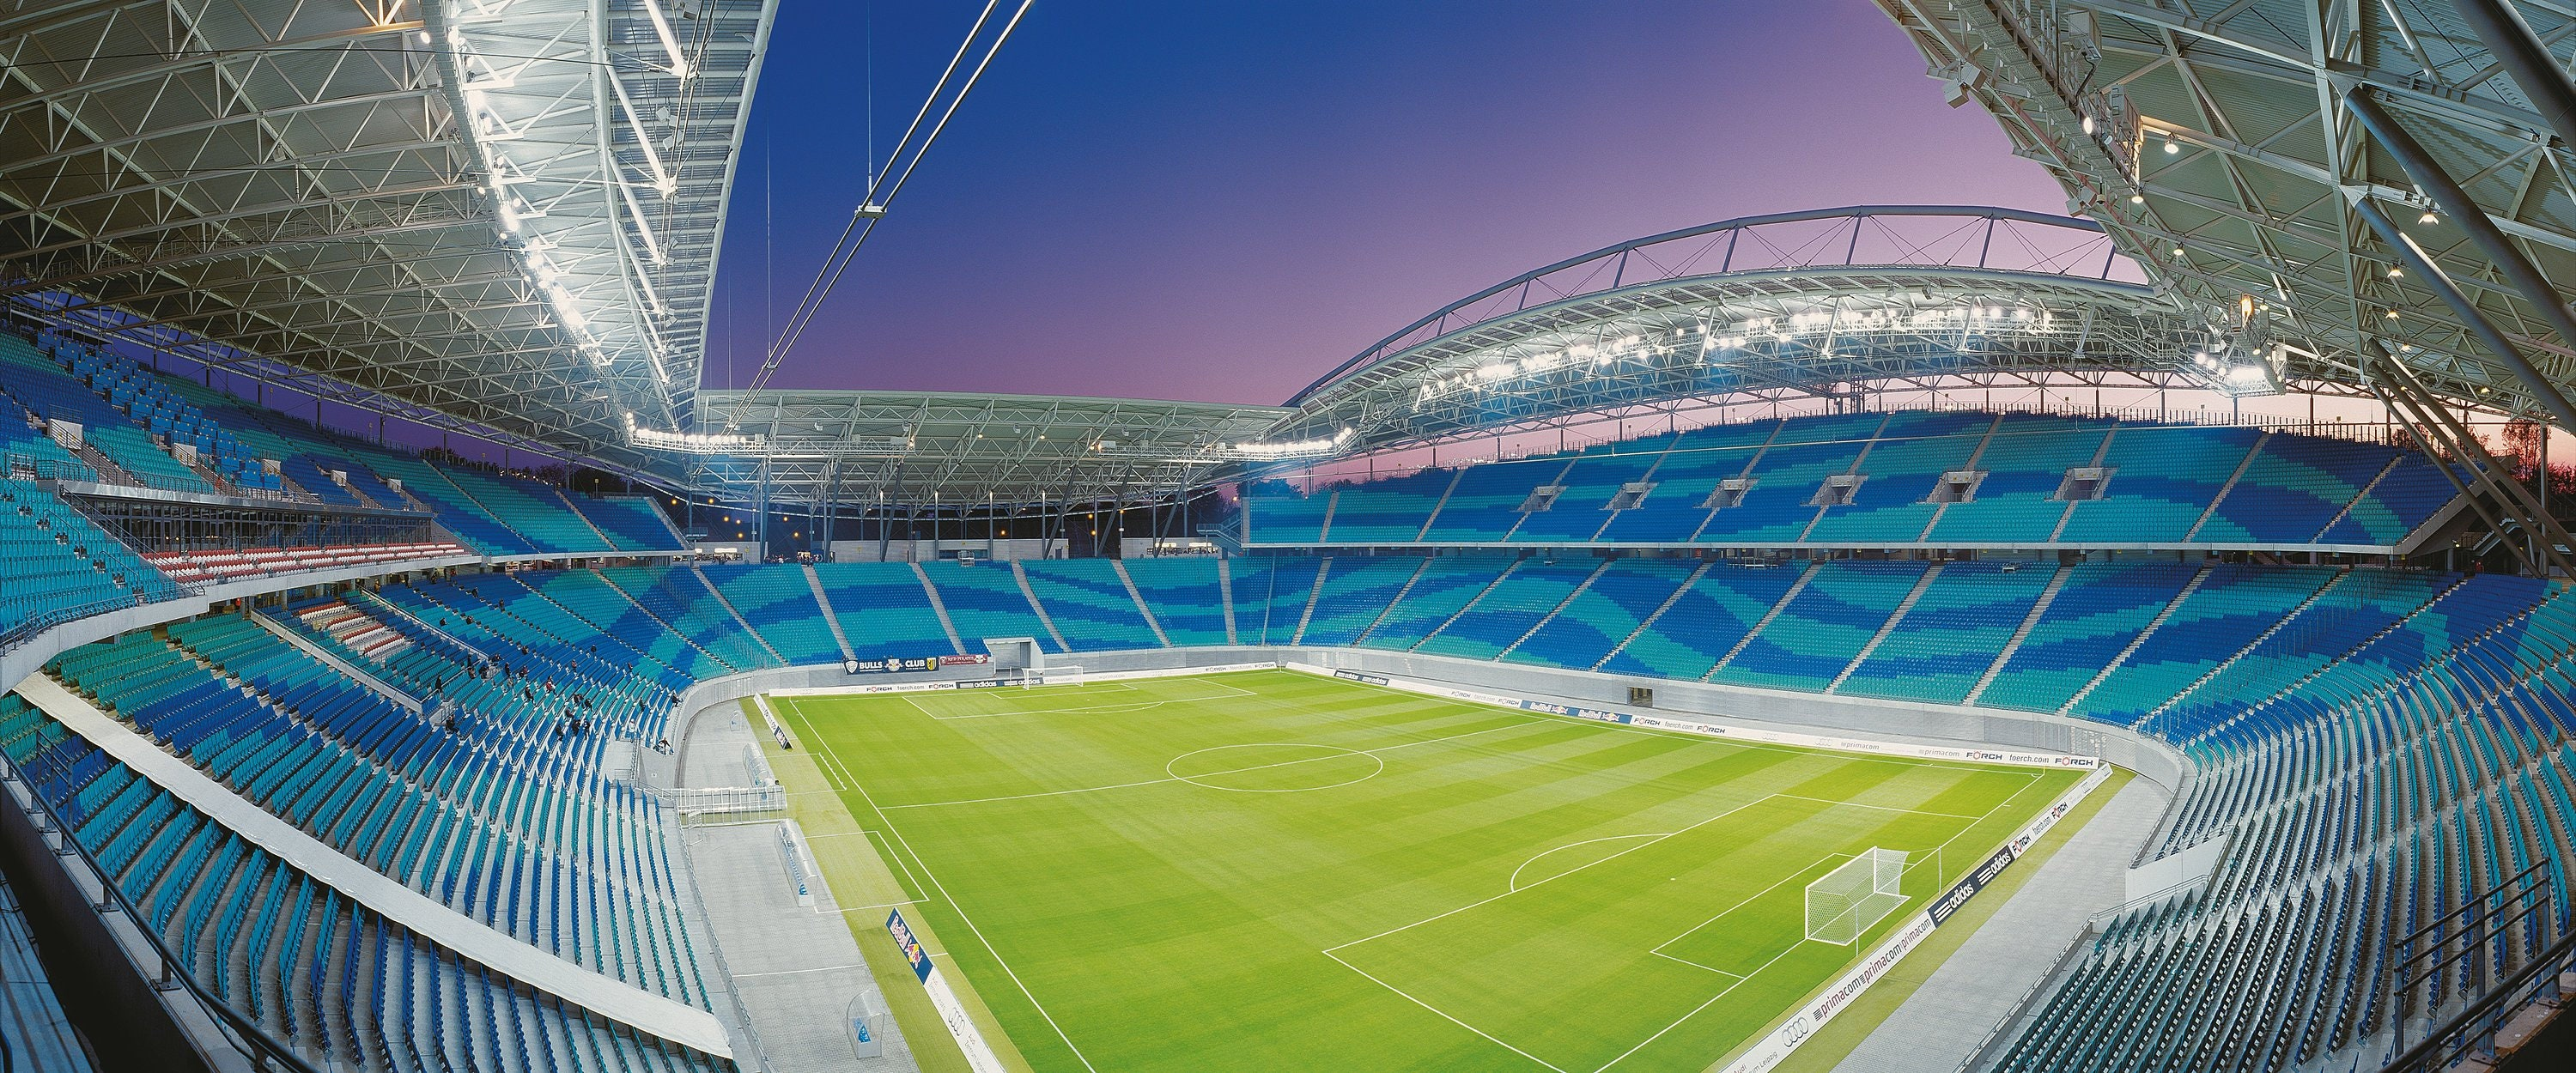 stadion-red-bull-arena